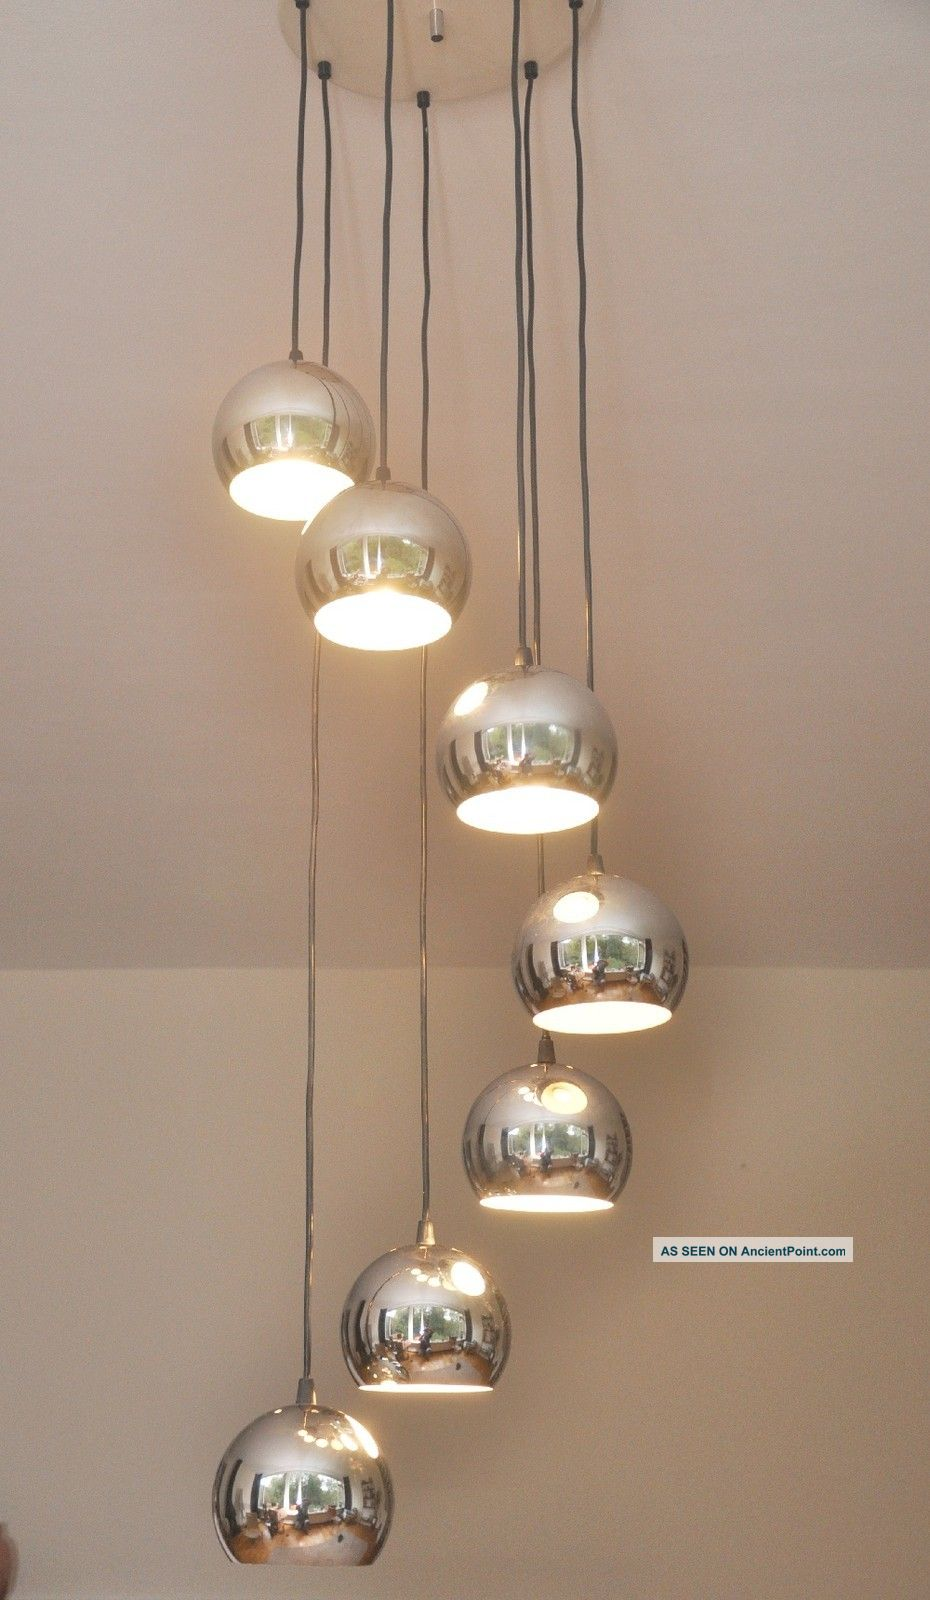 Spectacular Seven Tier Chrome Ball Vintage Chandelier 1970ies Germany 20th Century photo